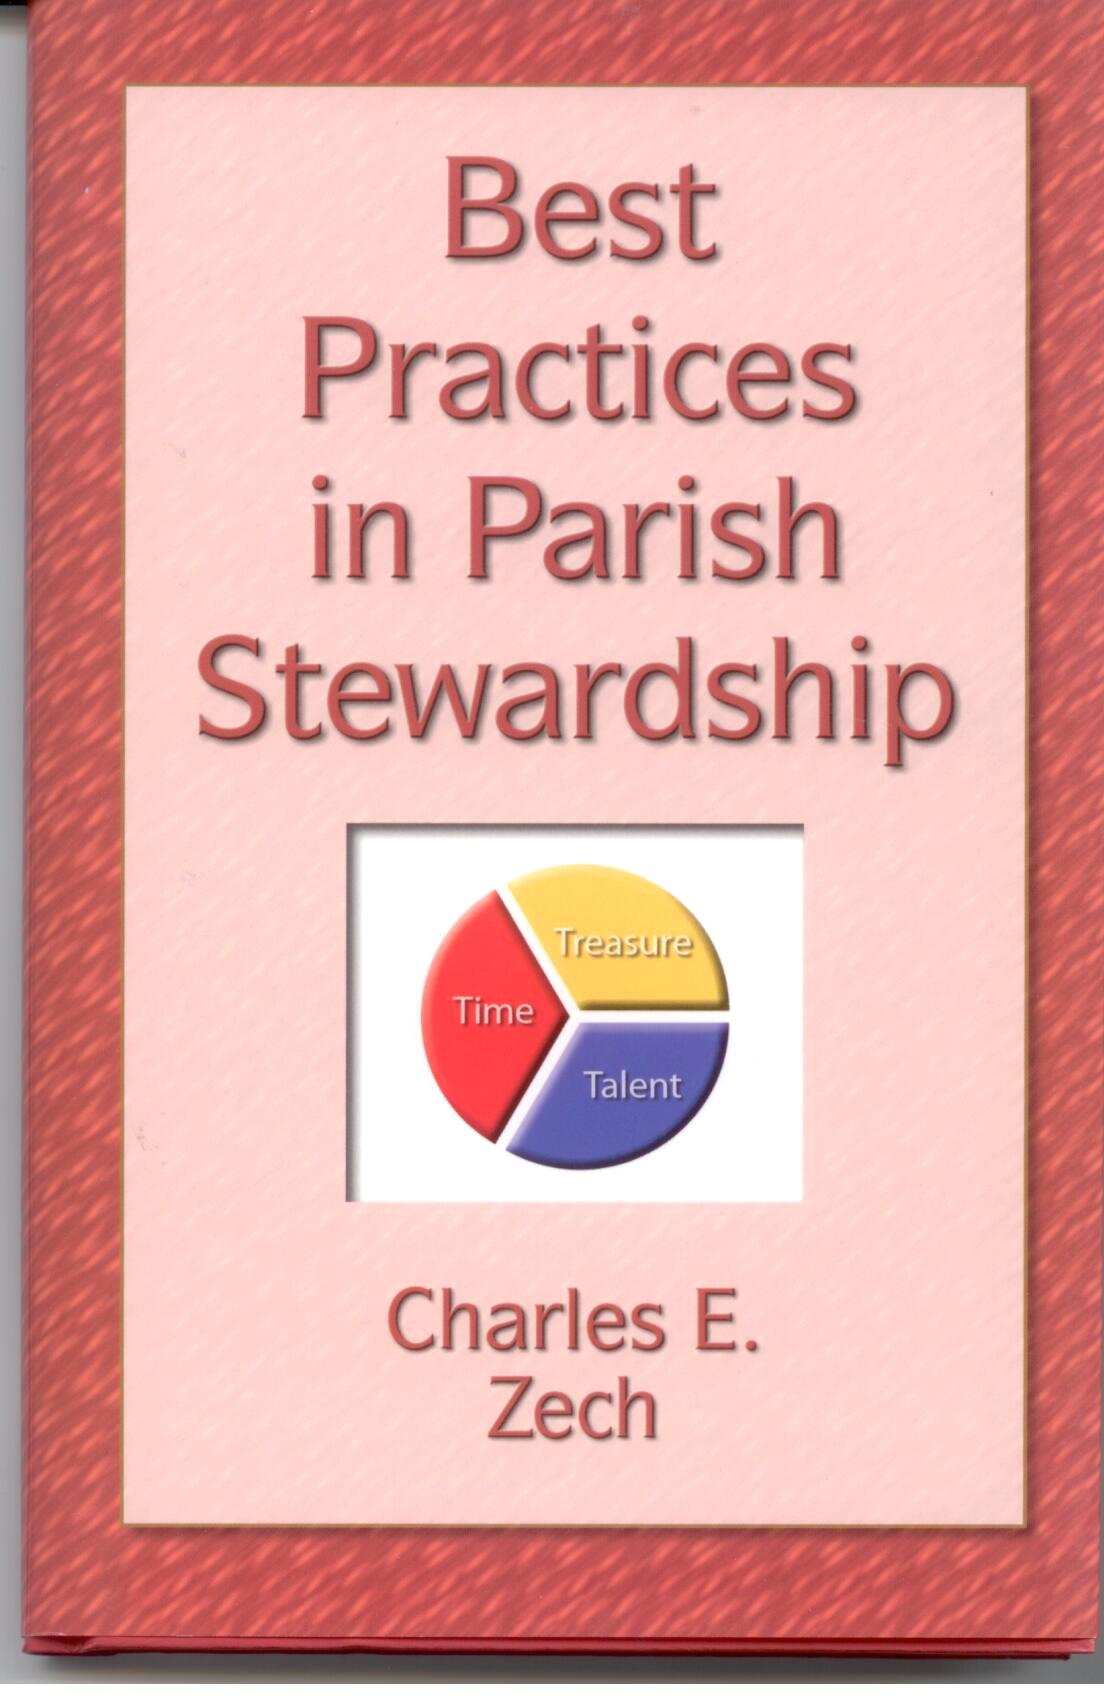 Best Practices In Parish Stewardship by Charles E. Zech 108-9781592764921